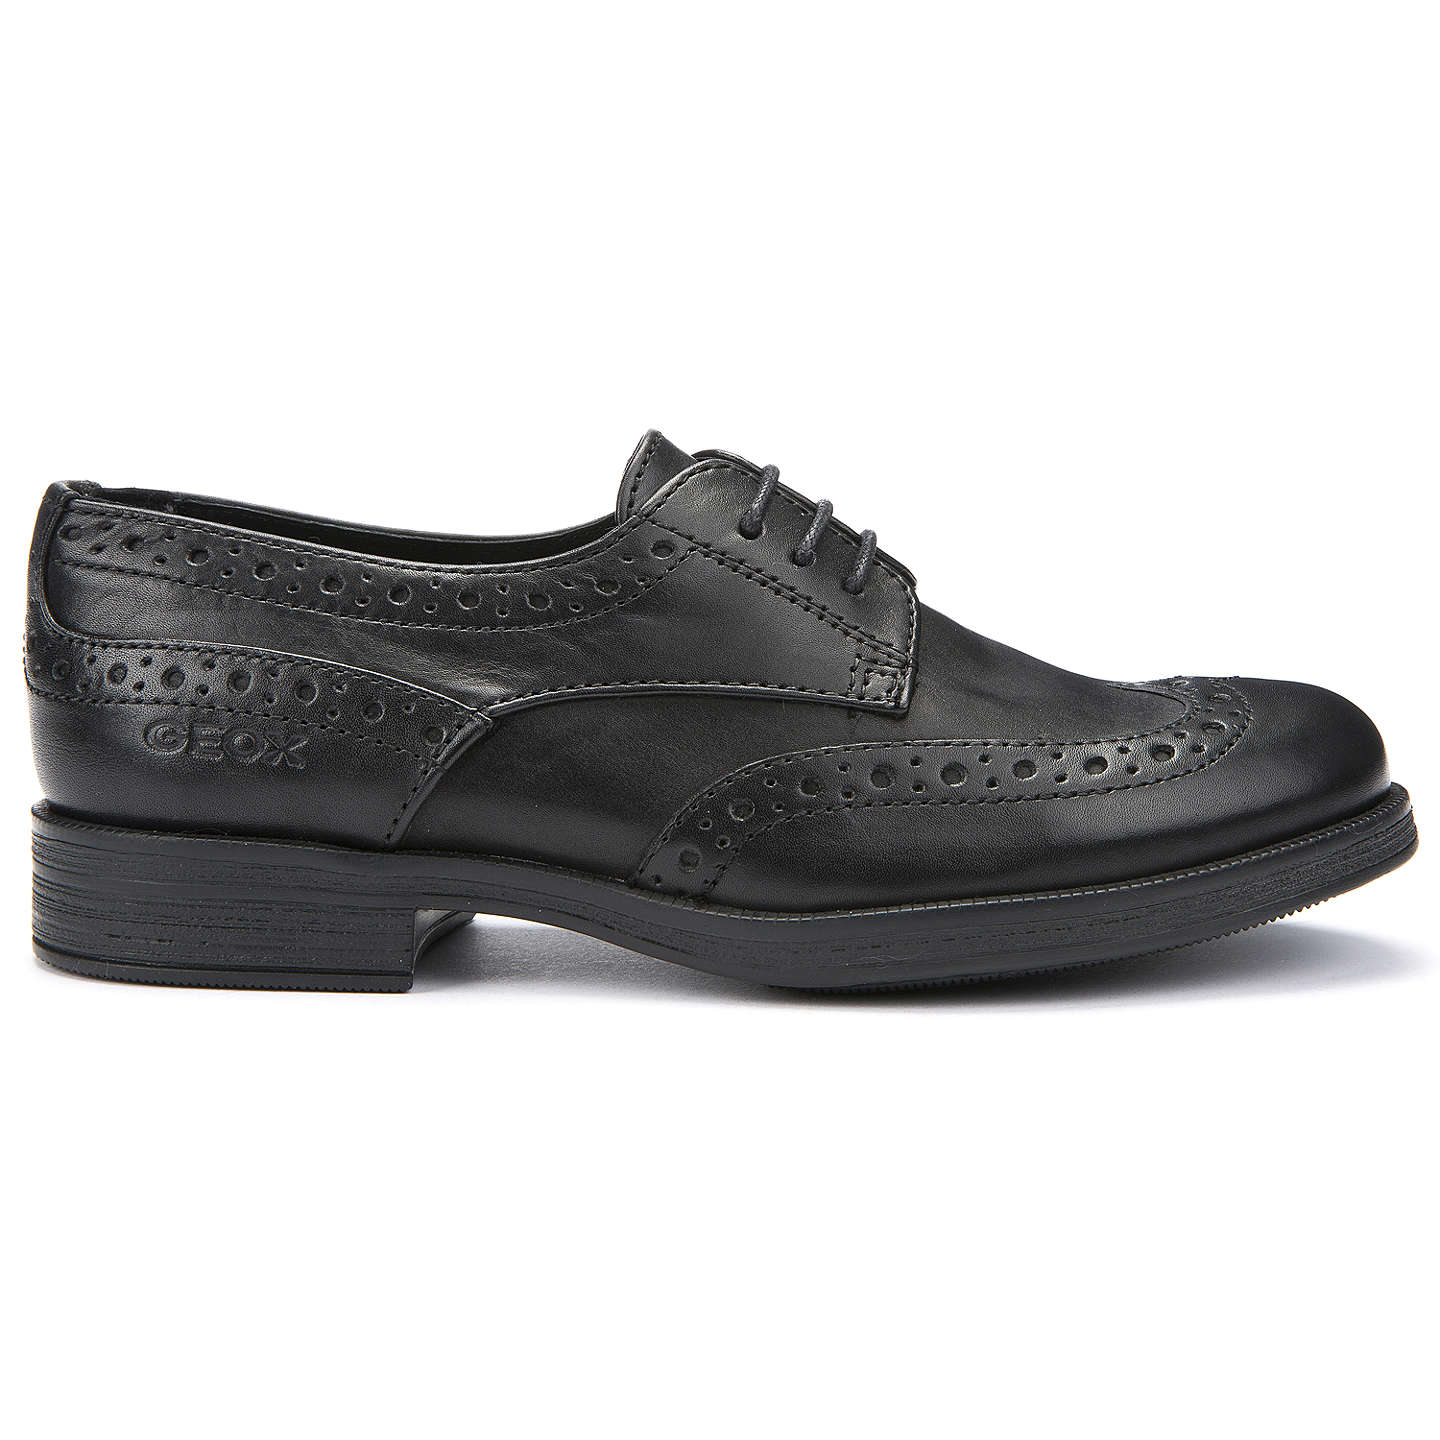 BuyGeox Lace-Up Brogue, Black, 30 Online at johnlewis.com